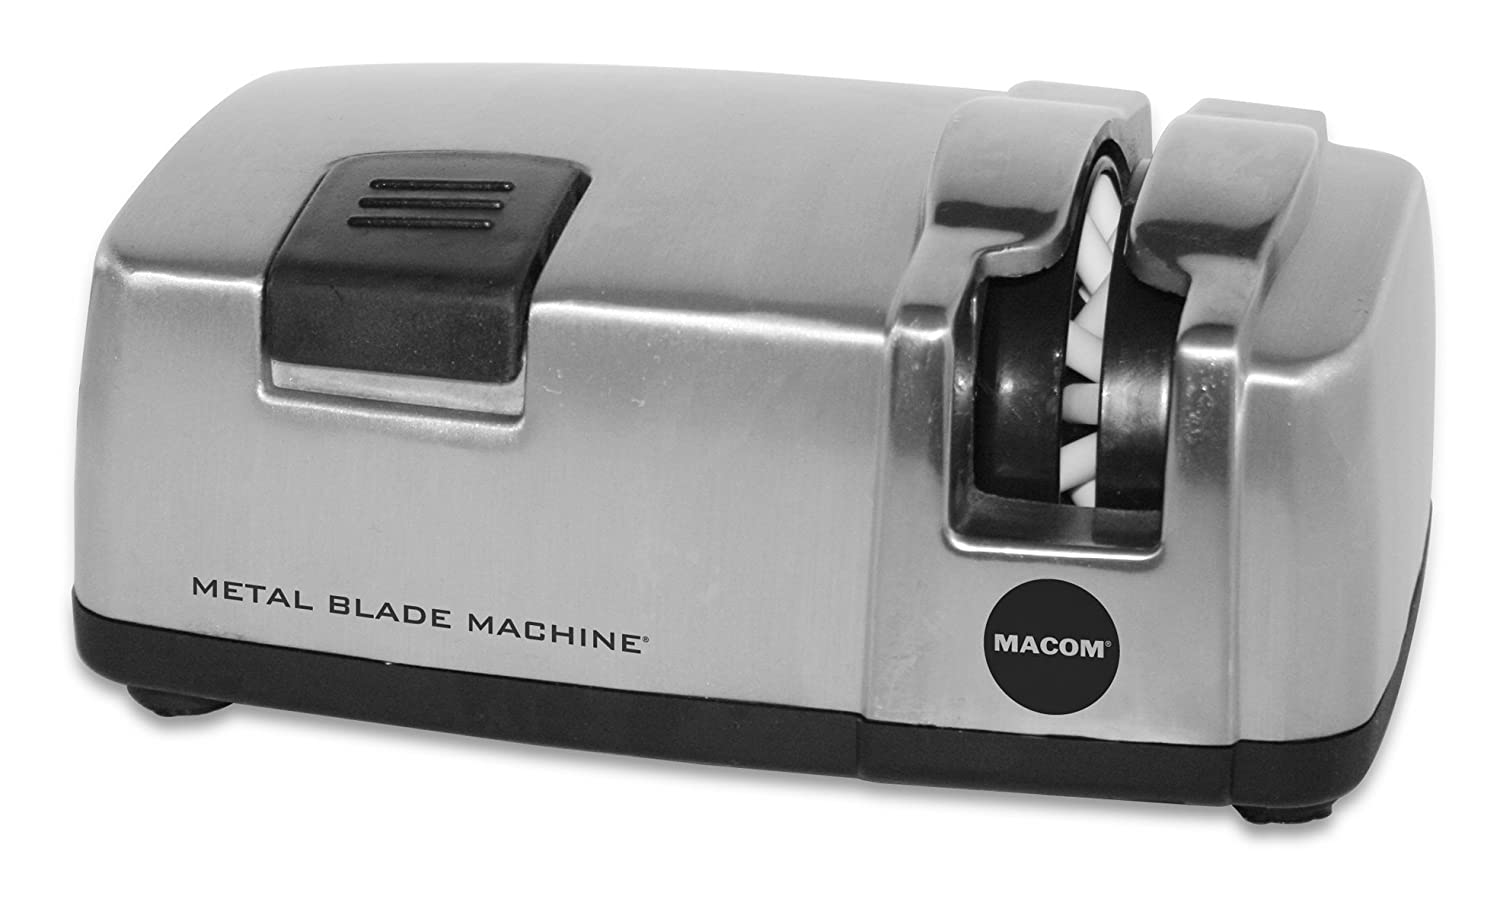 Macom 815 Metal Blade Machine